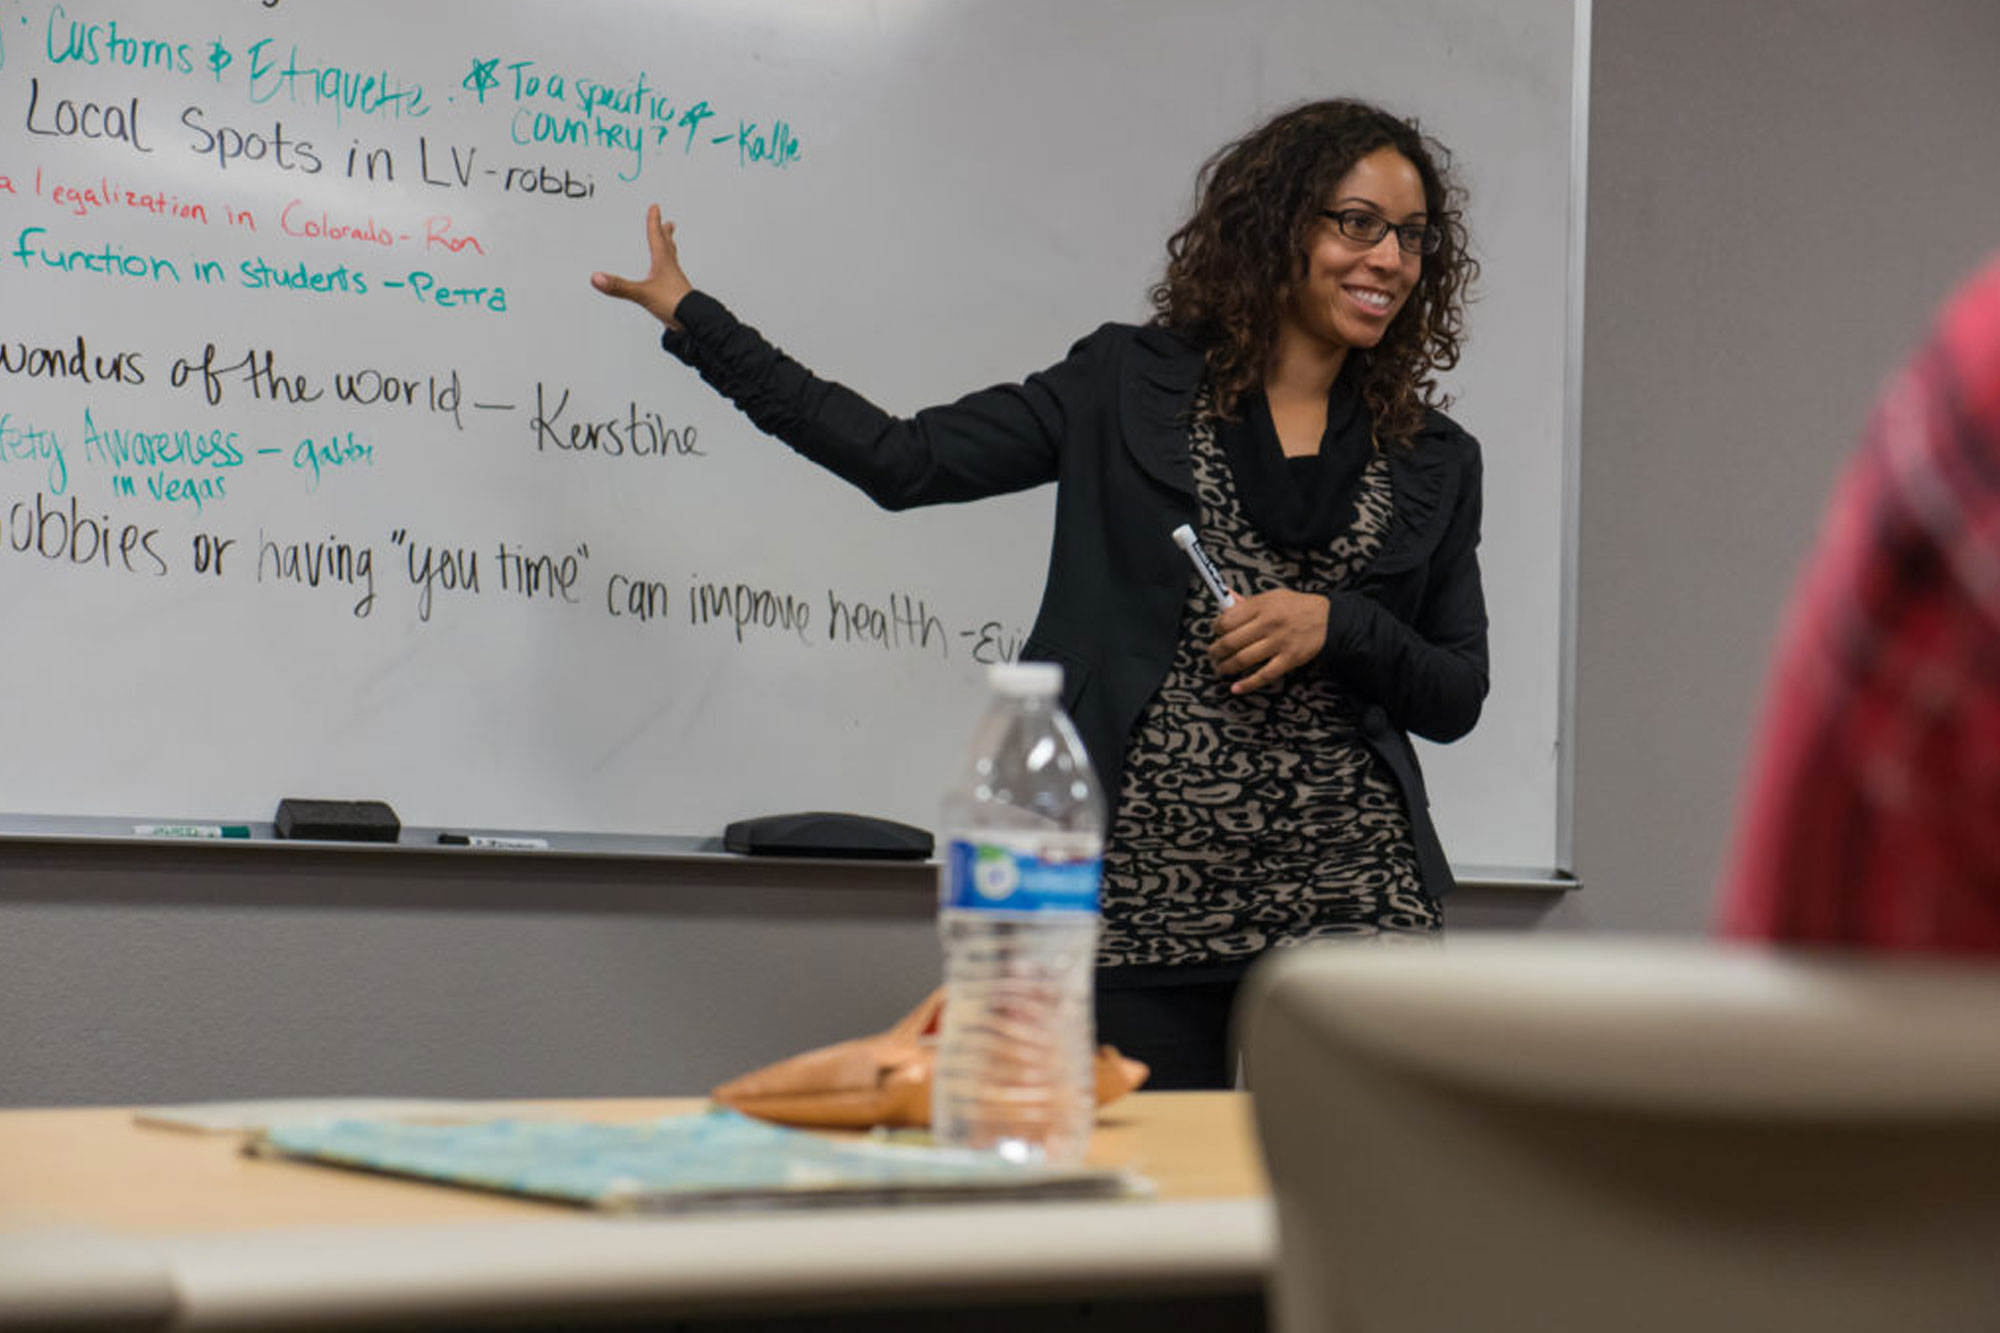 Communications Professor, Dr. Jasmine Phillips using whiteboard to teach